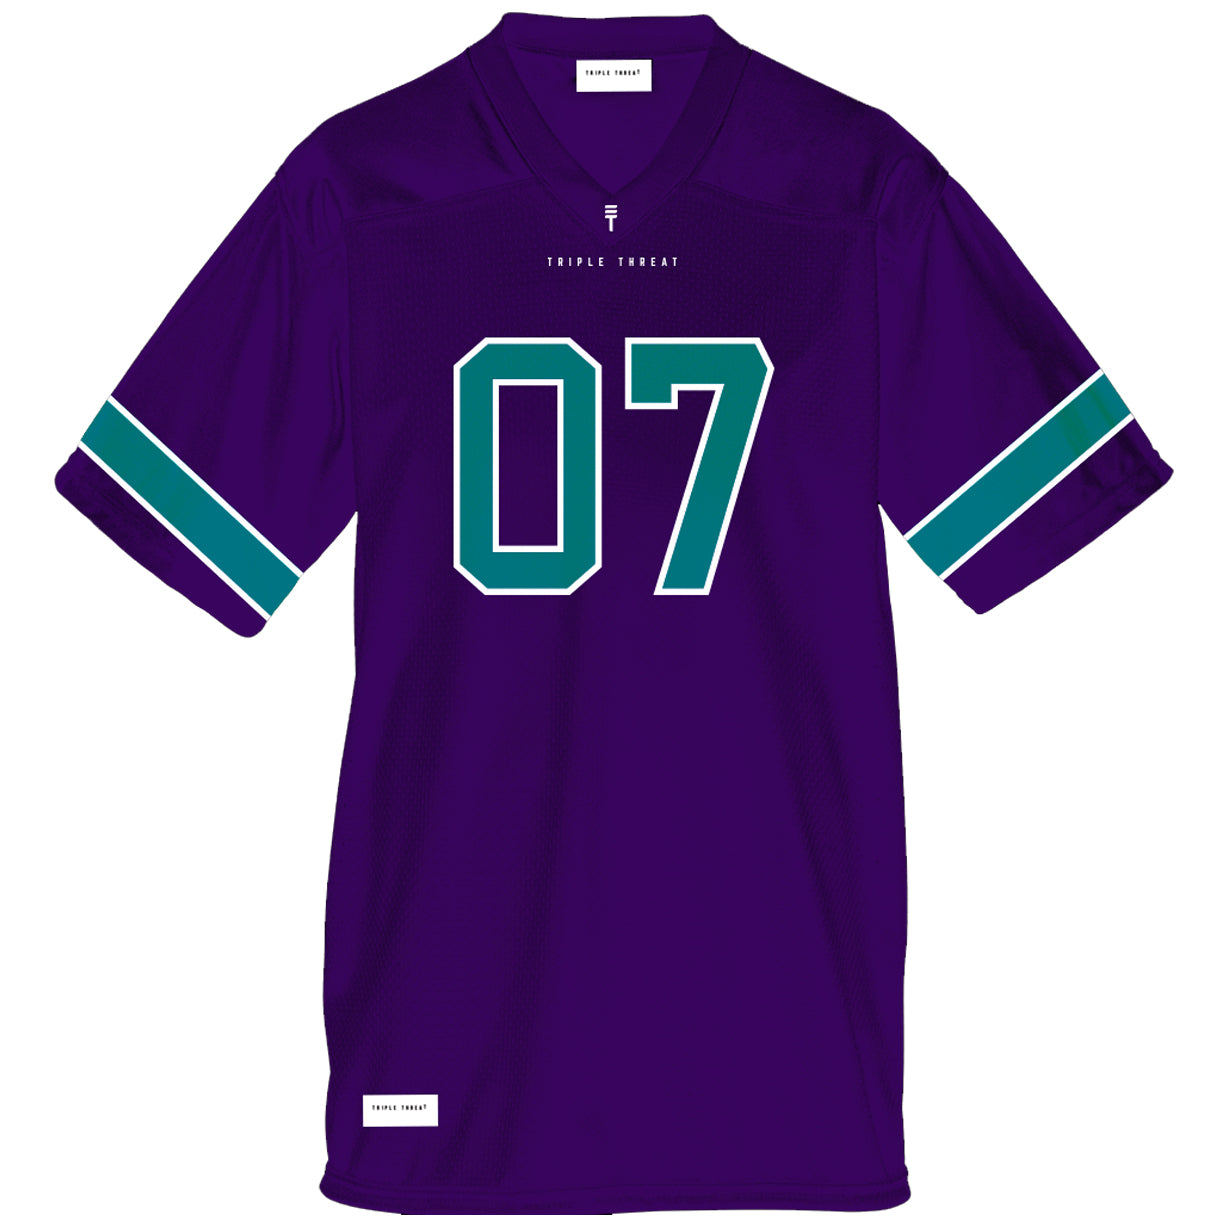 outlet store ff888 266d0 THROWBACK FOOTBALL JERSEY - &